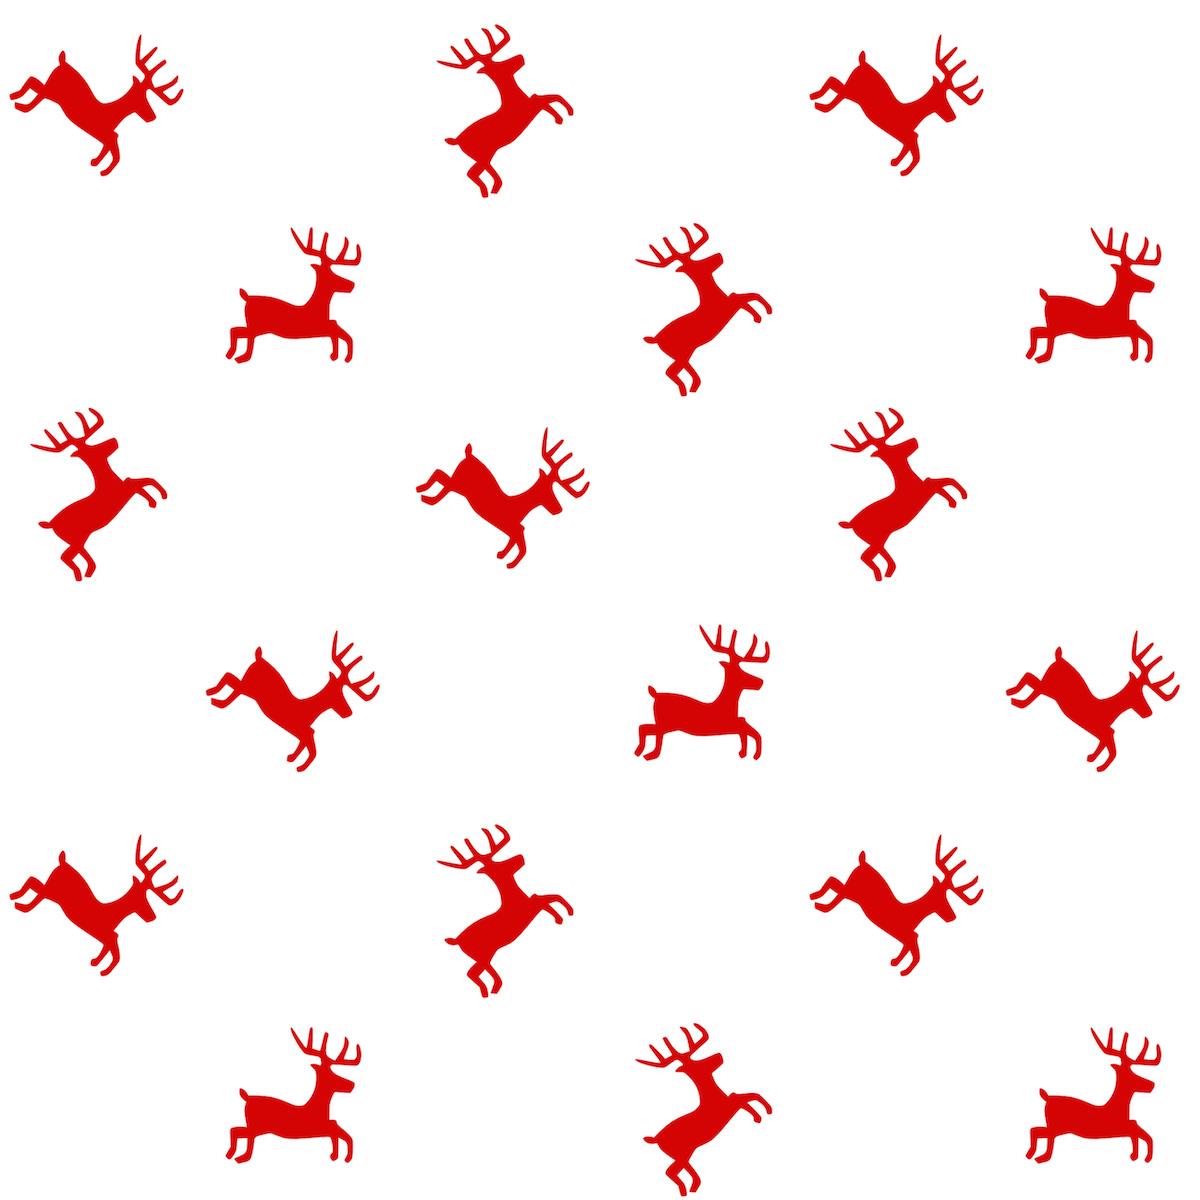 It's just a picture of Juicy Christmas Printable Paper